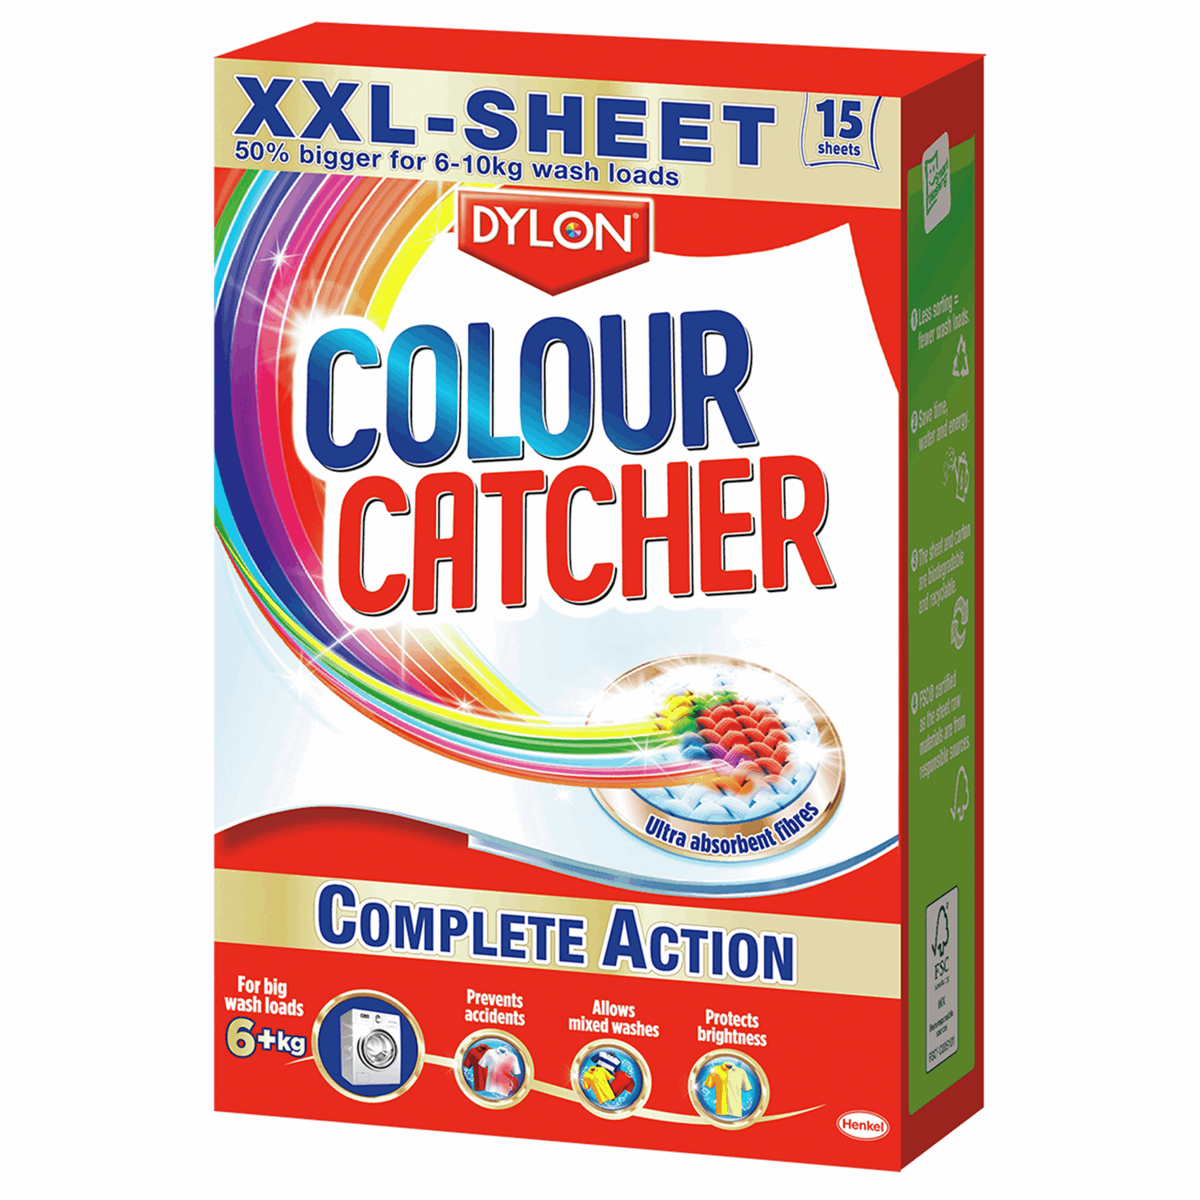 Picture of Colour Catcher: 6 Boxes of 15 XXL Sheets